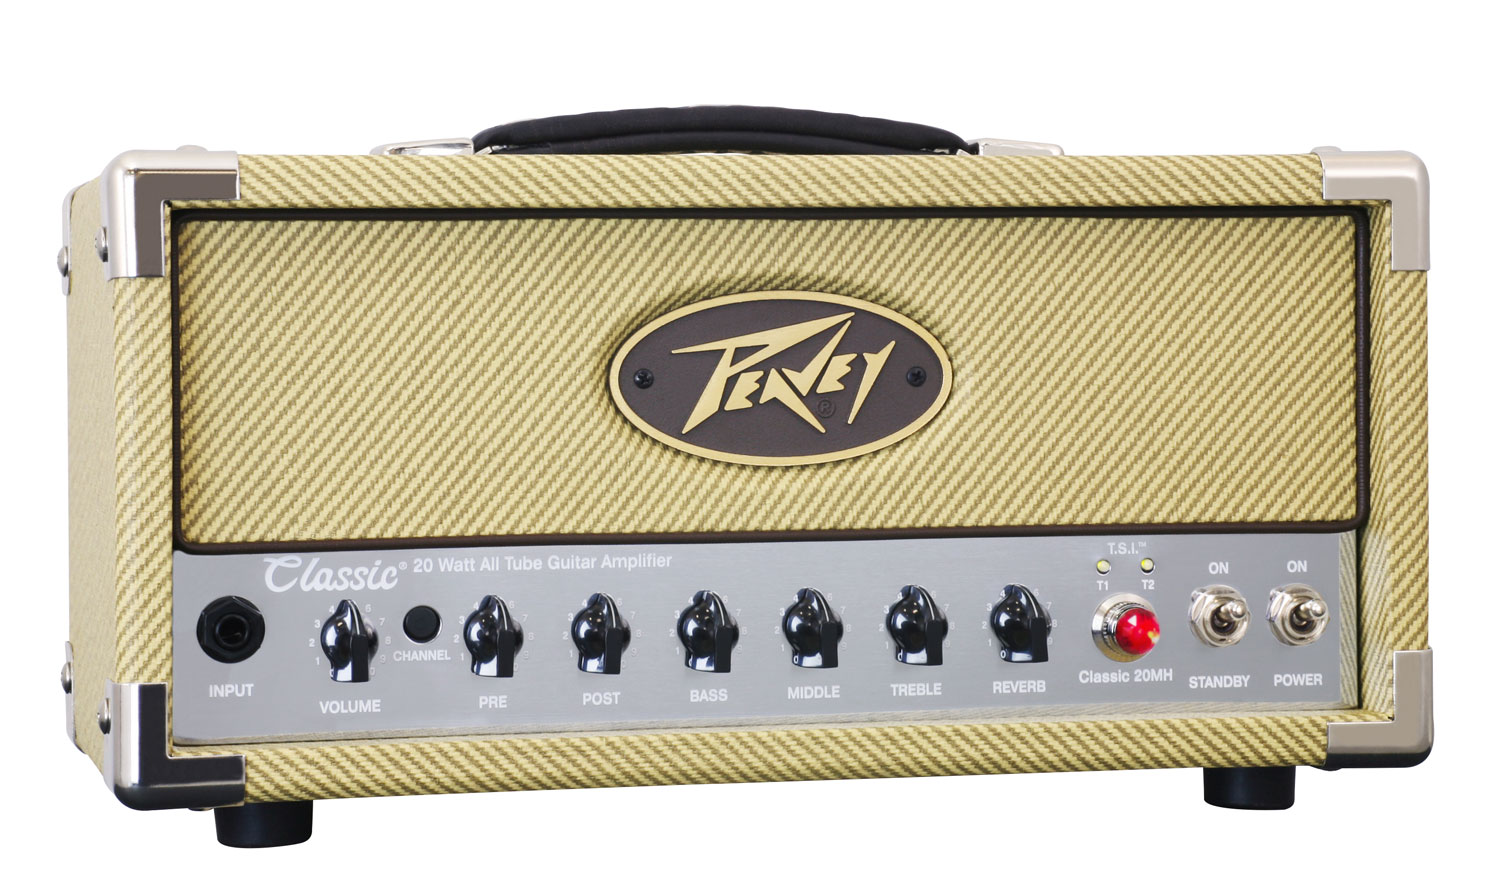 peavey classic 20 mh mini head amplifier electric guitar 20w tube amp head pev15 3614150 rs. Black Bedroom Furniture Sets. Home Design Ideas